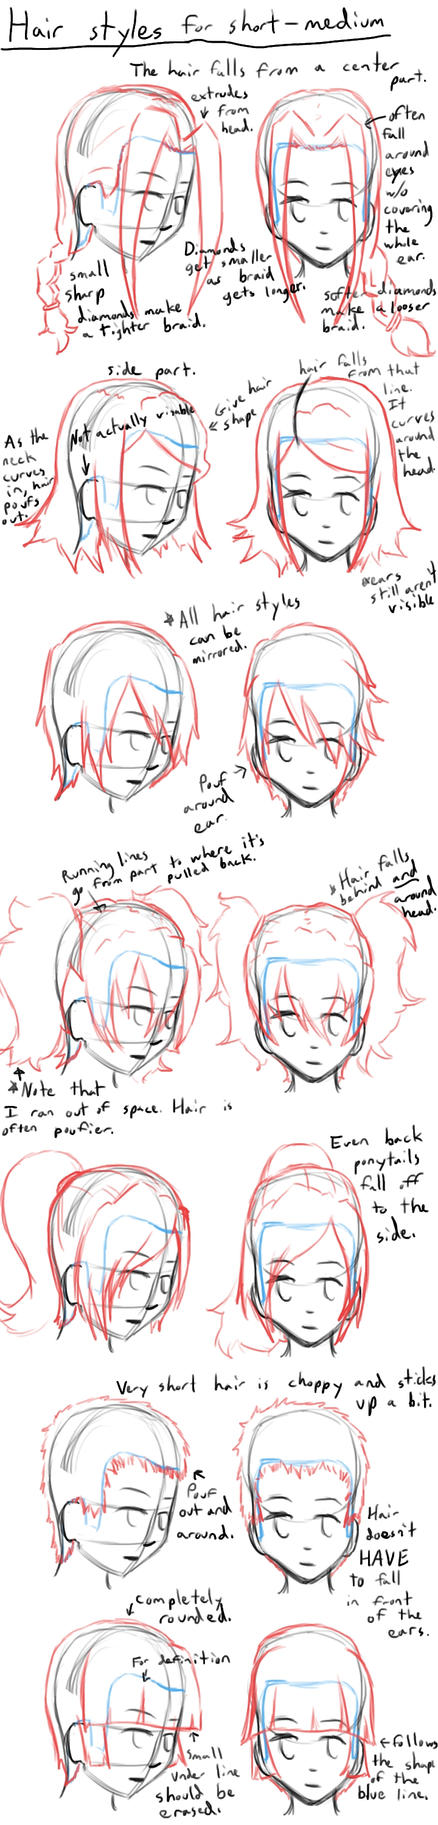 How to Draw Anime Hair Styles by LearntoDrawAnime